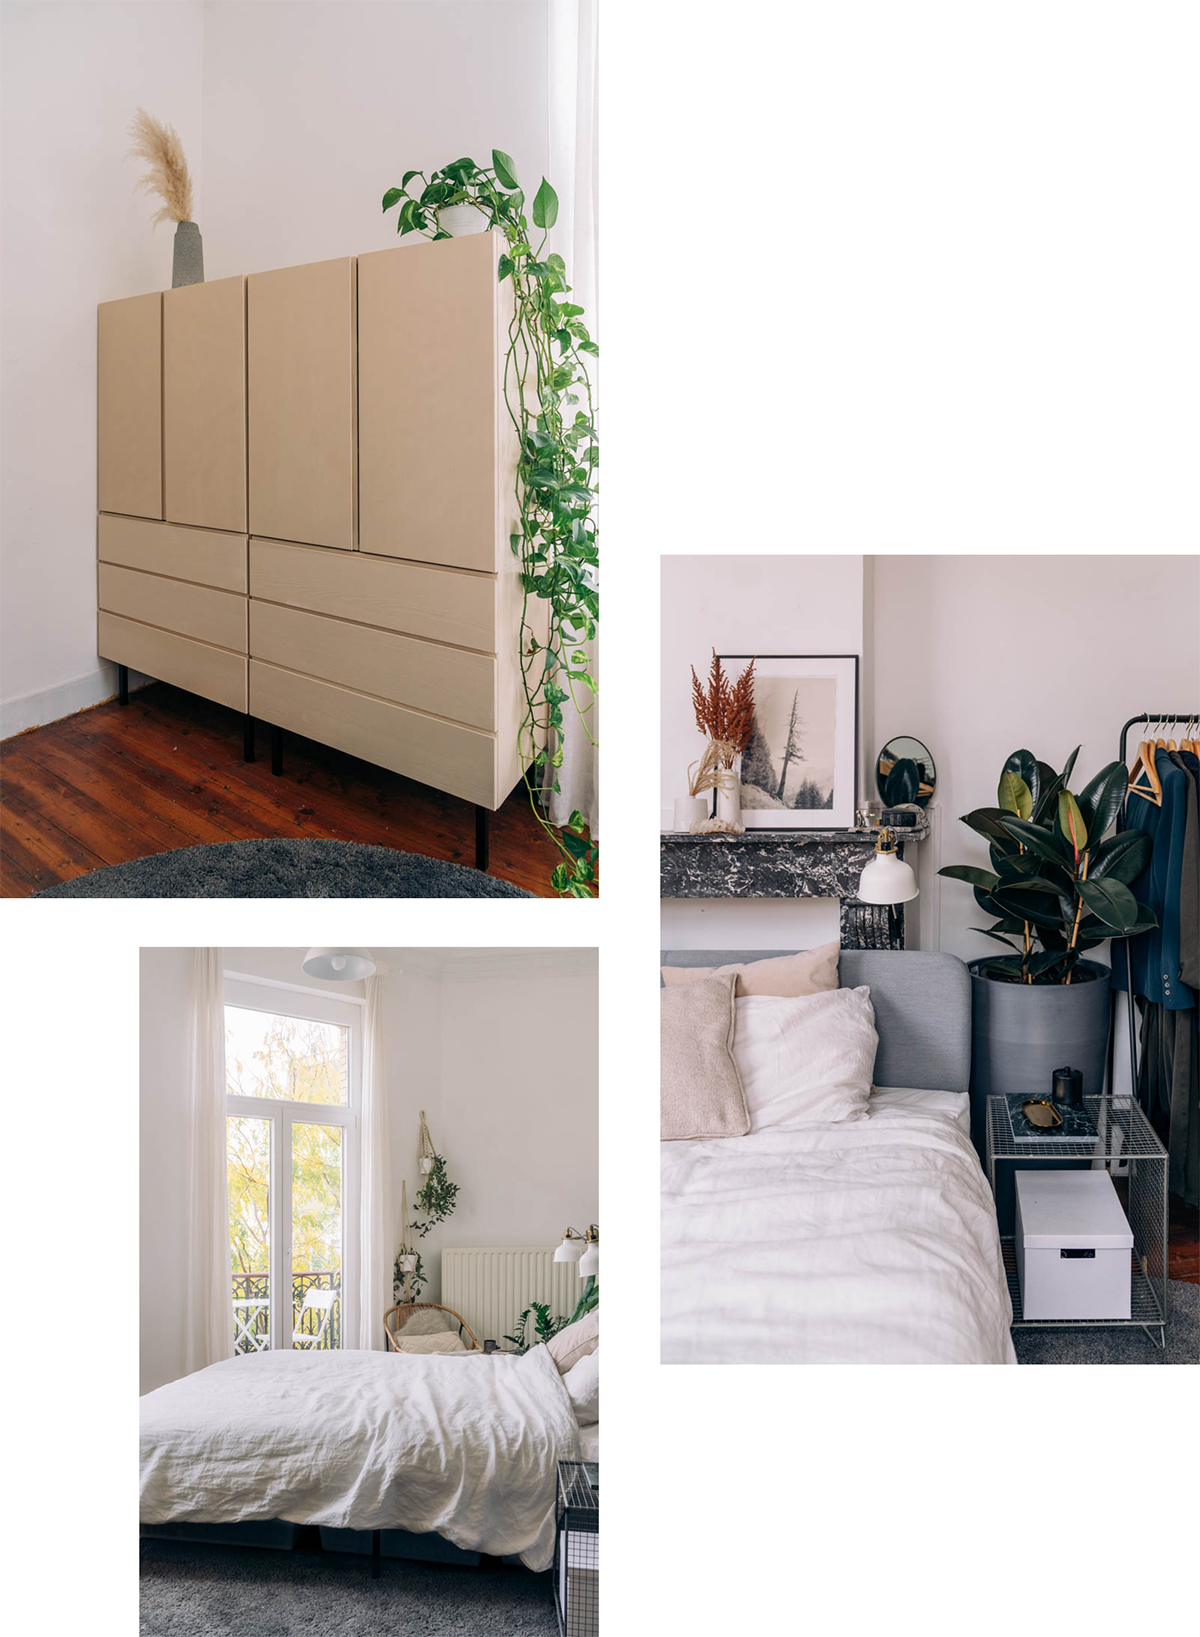 Ikea Ivar hack wardrobe - Hannelore Veelaert for aupaysdesmerveillesblog.be